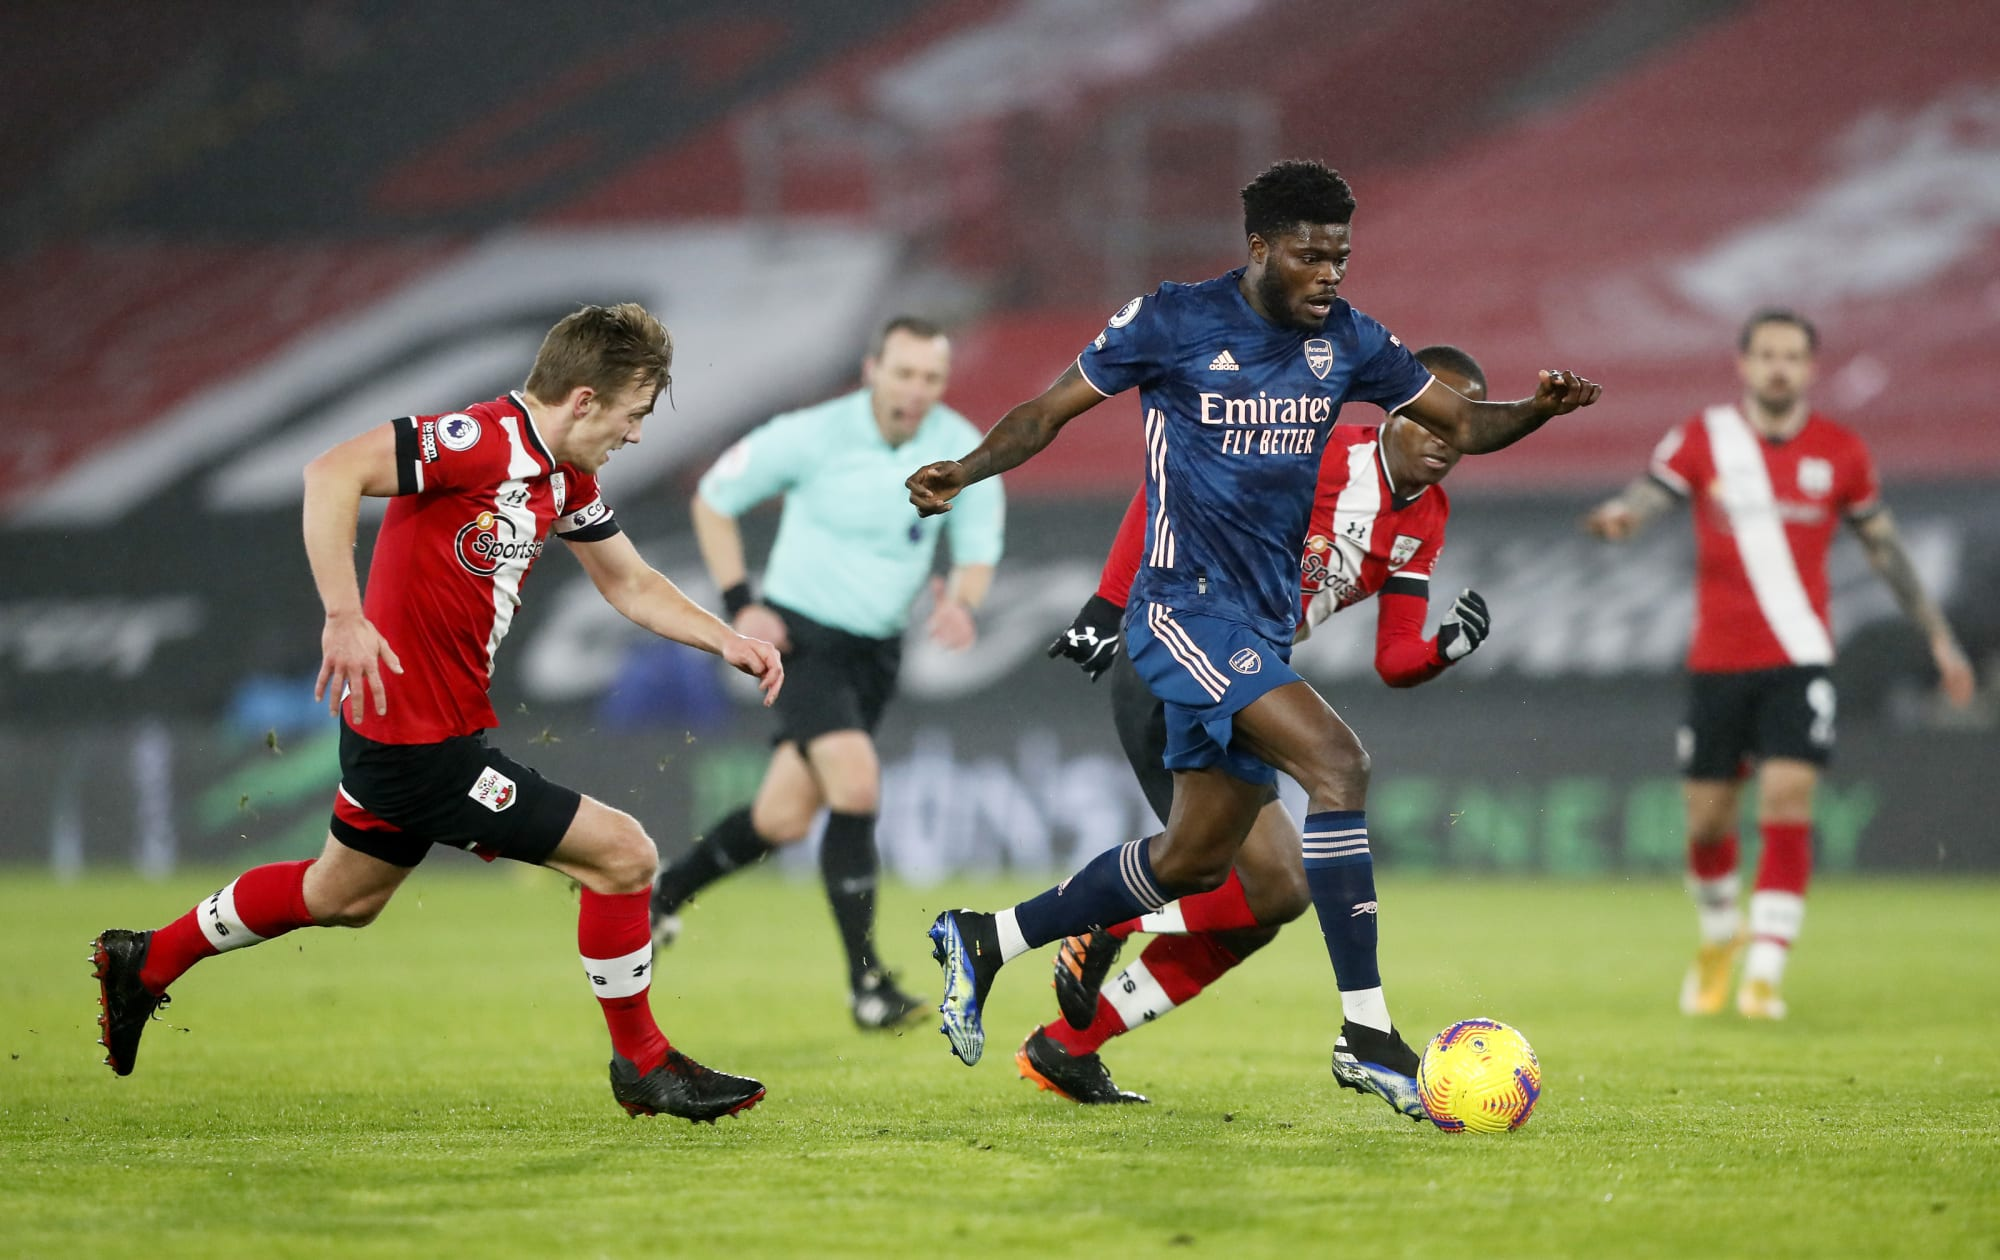 Arsenal: Less is More With Thomas Partey and Emile Smith Rowe